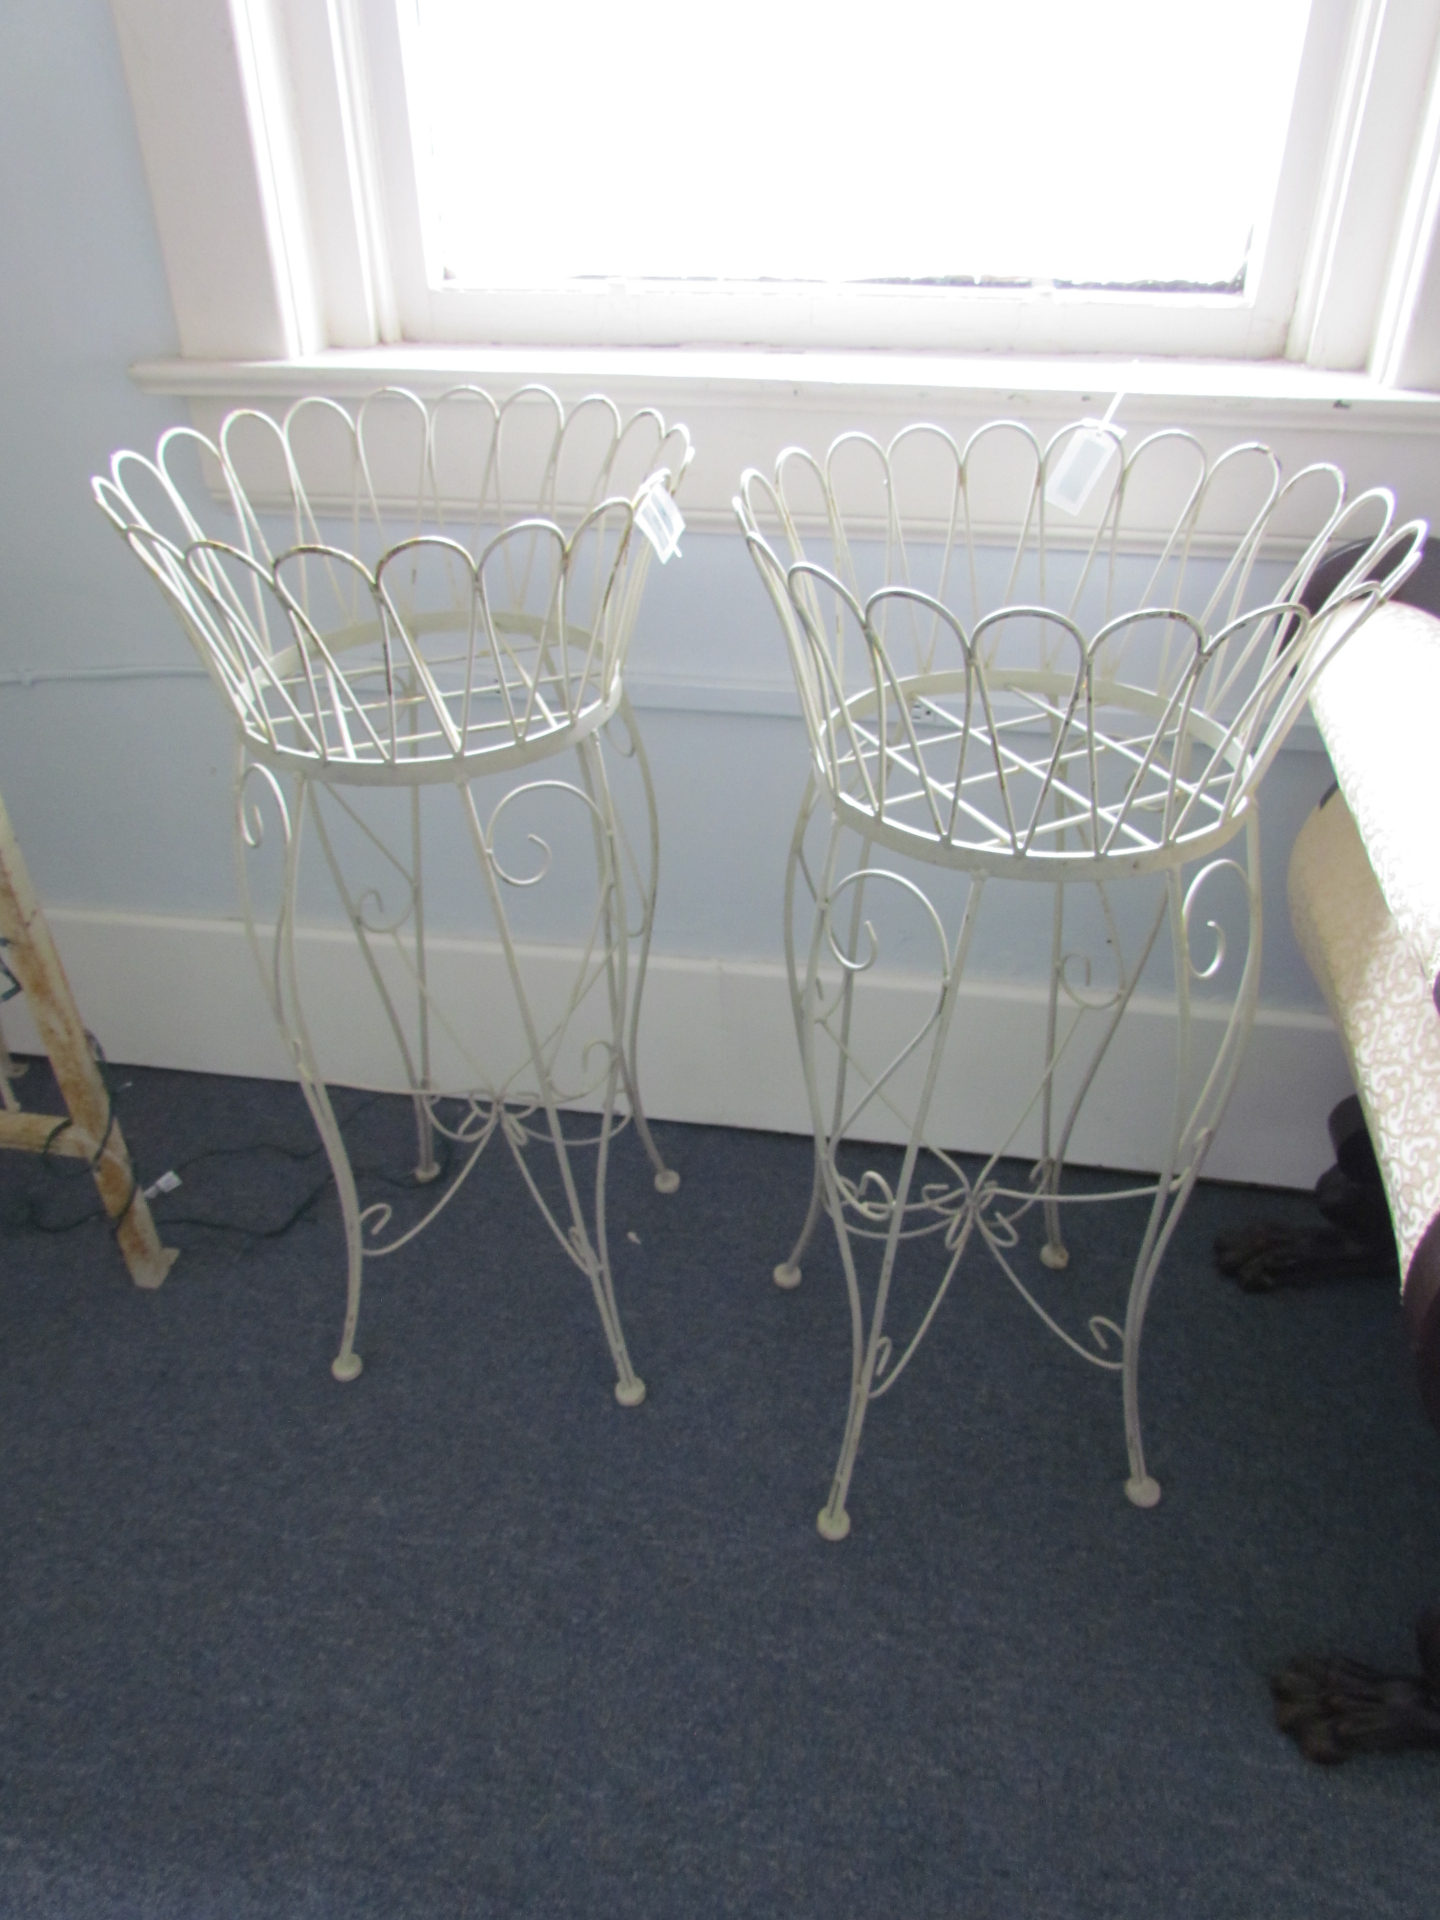 Wire Basket On Stand $10 / Day